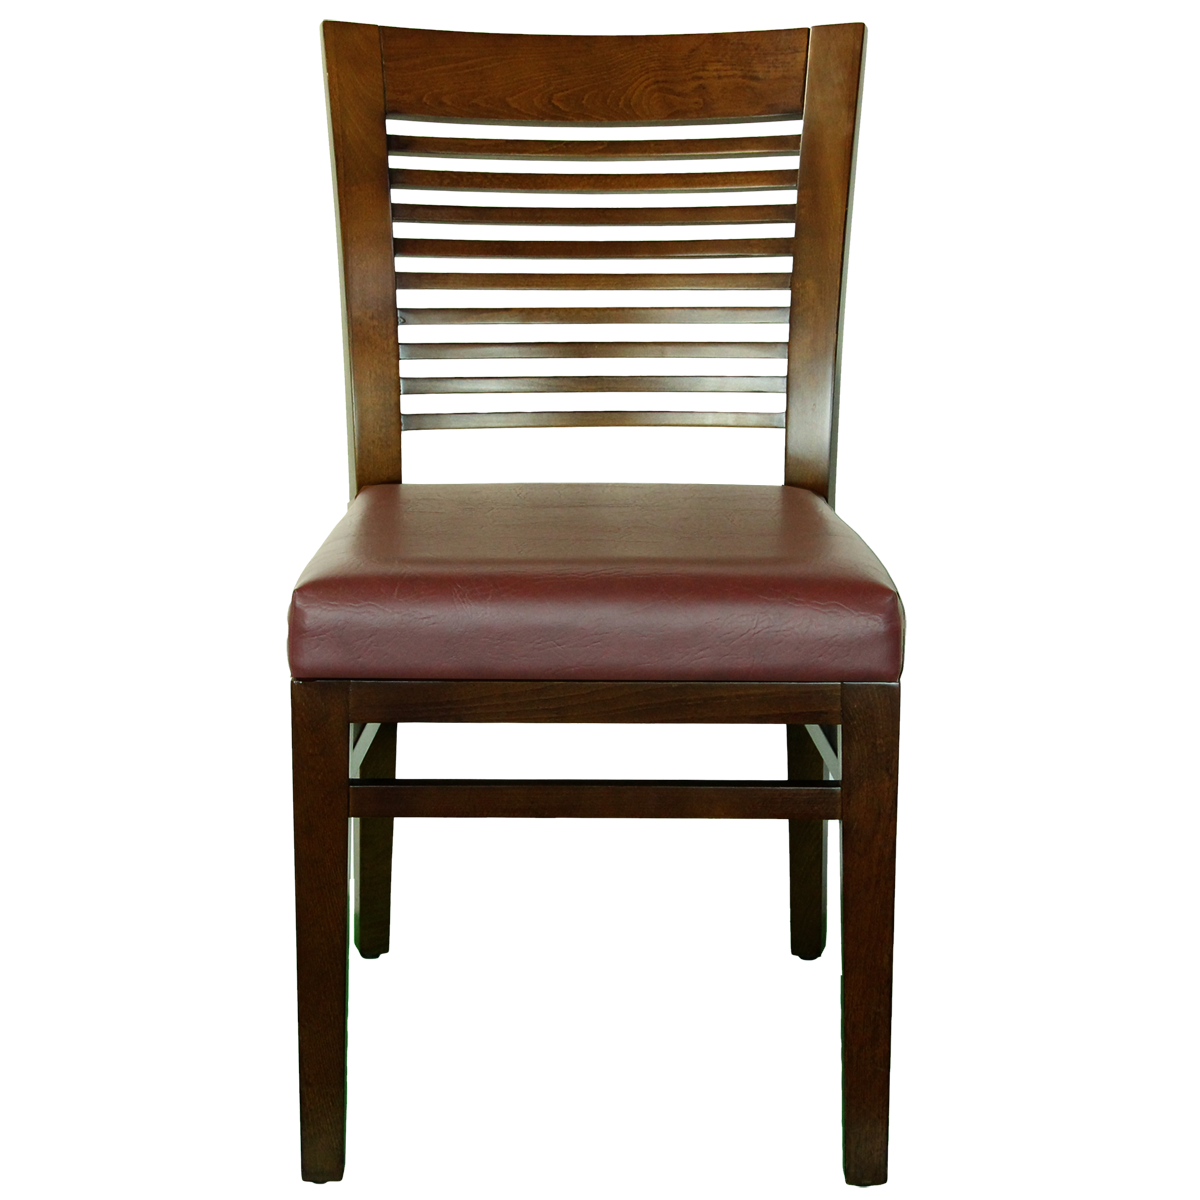 Black Wood Chair Seat >> Chairs : Wood Decorative Ladder Back Side Chair